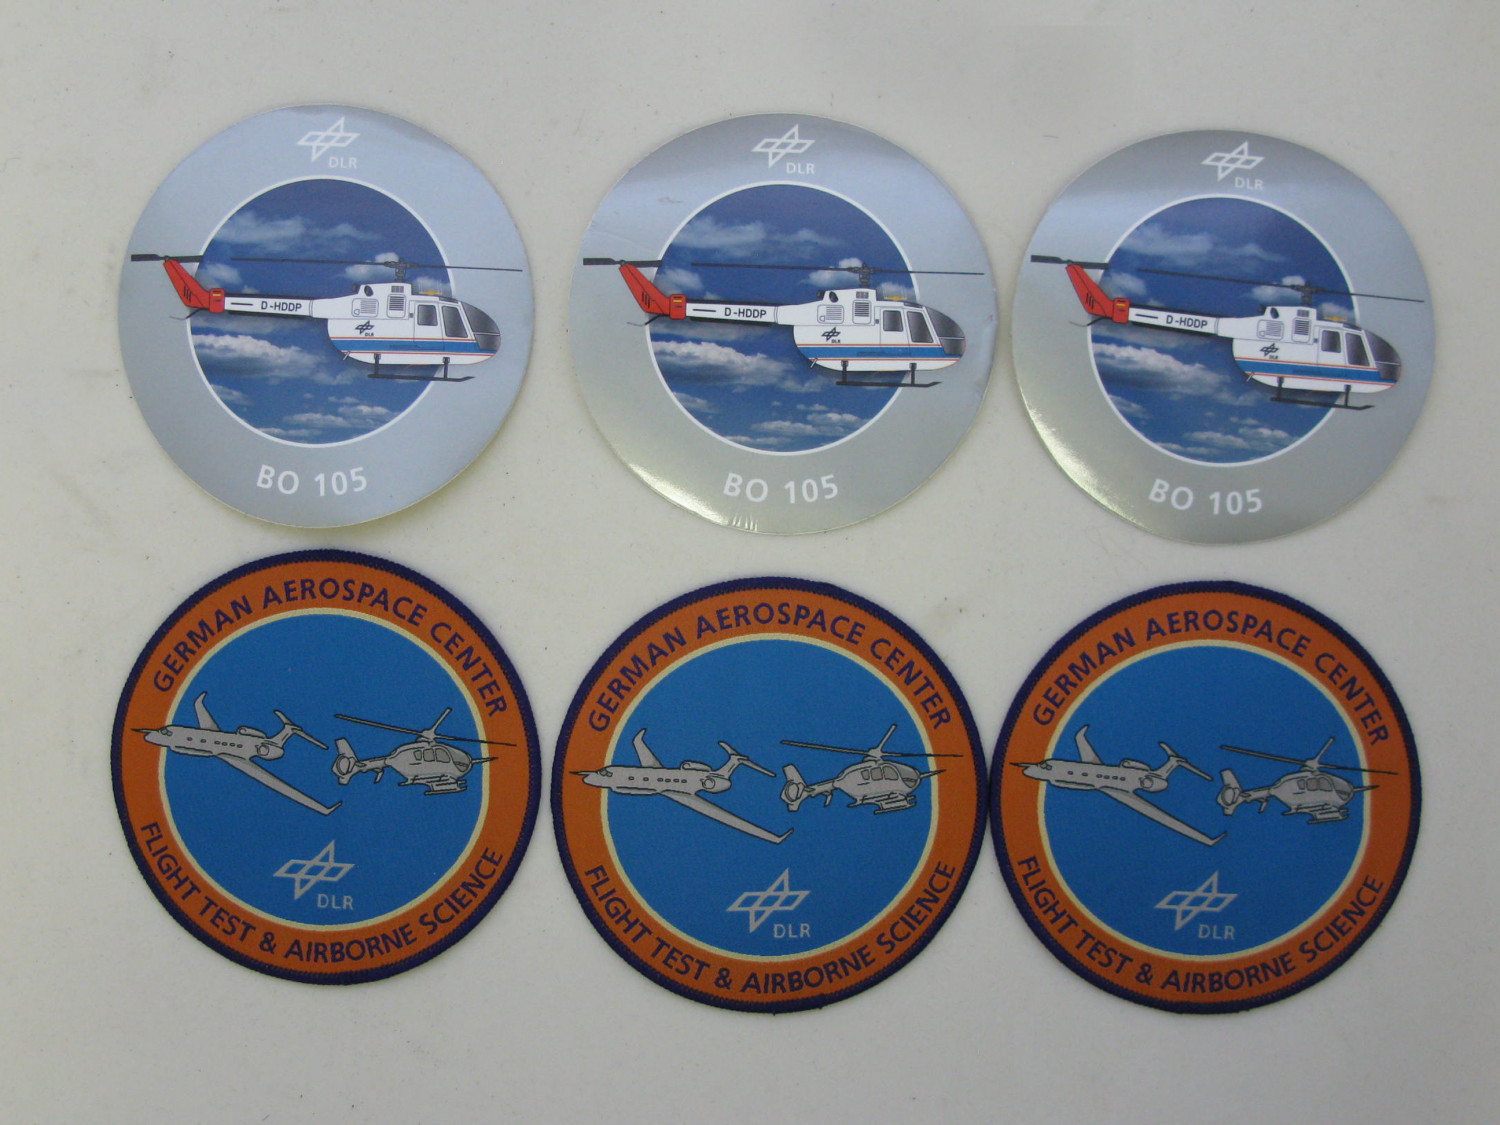 Selection of Items from German Aerospace Centre